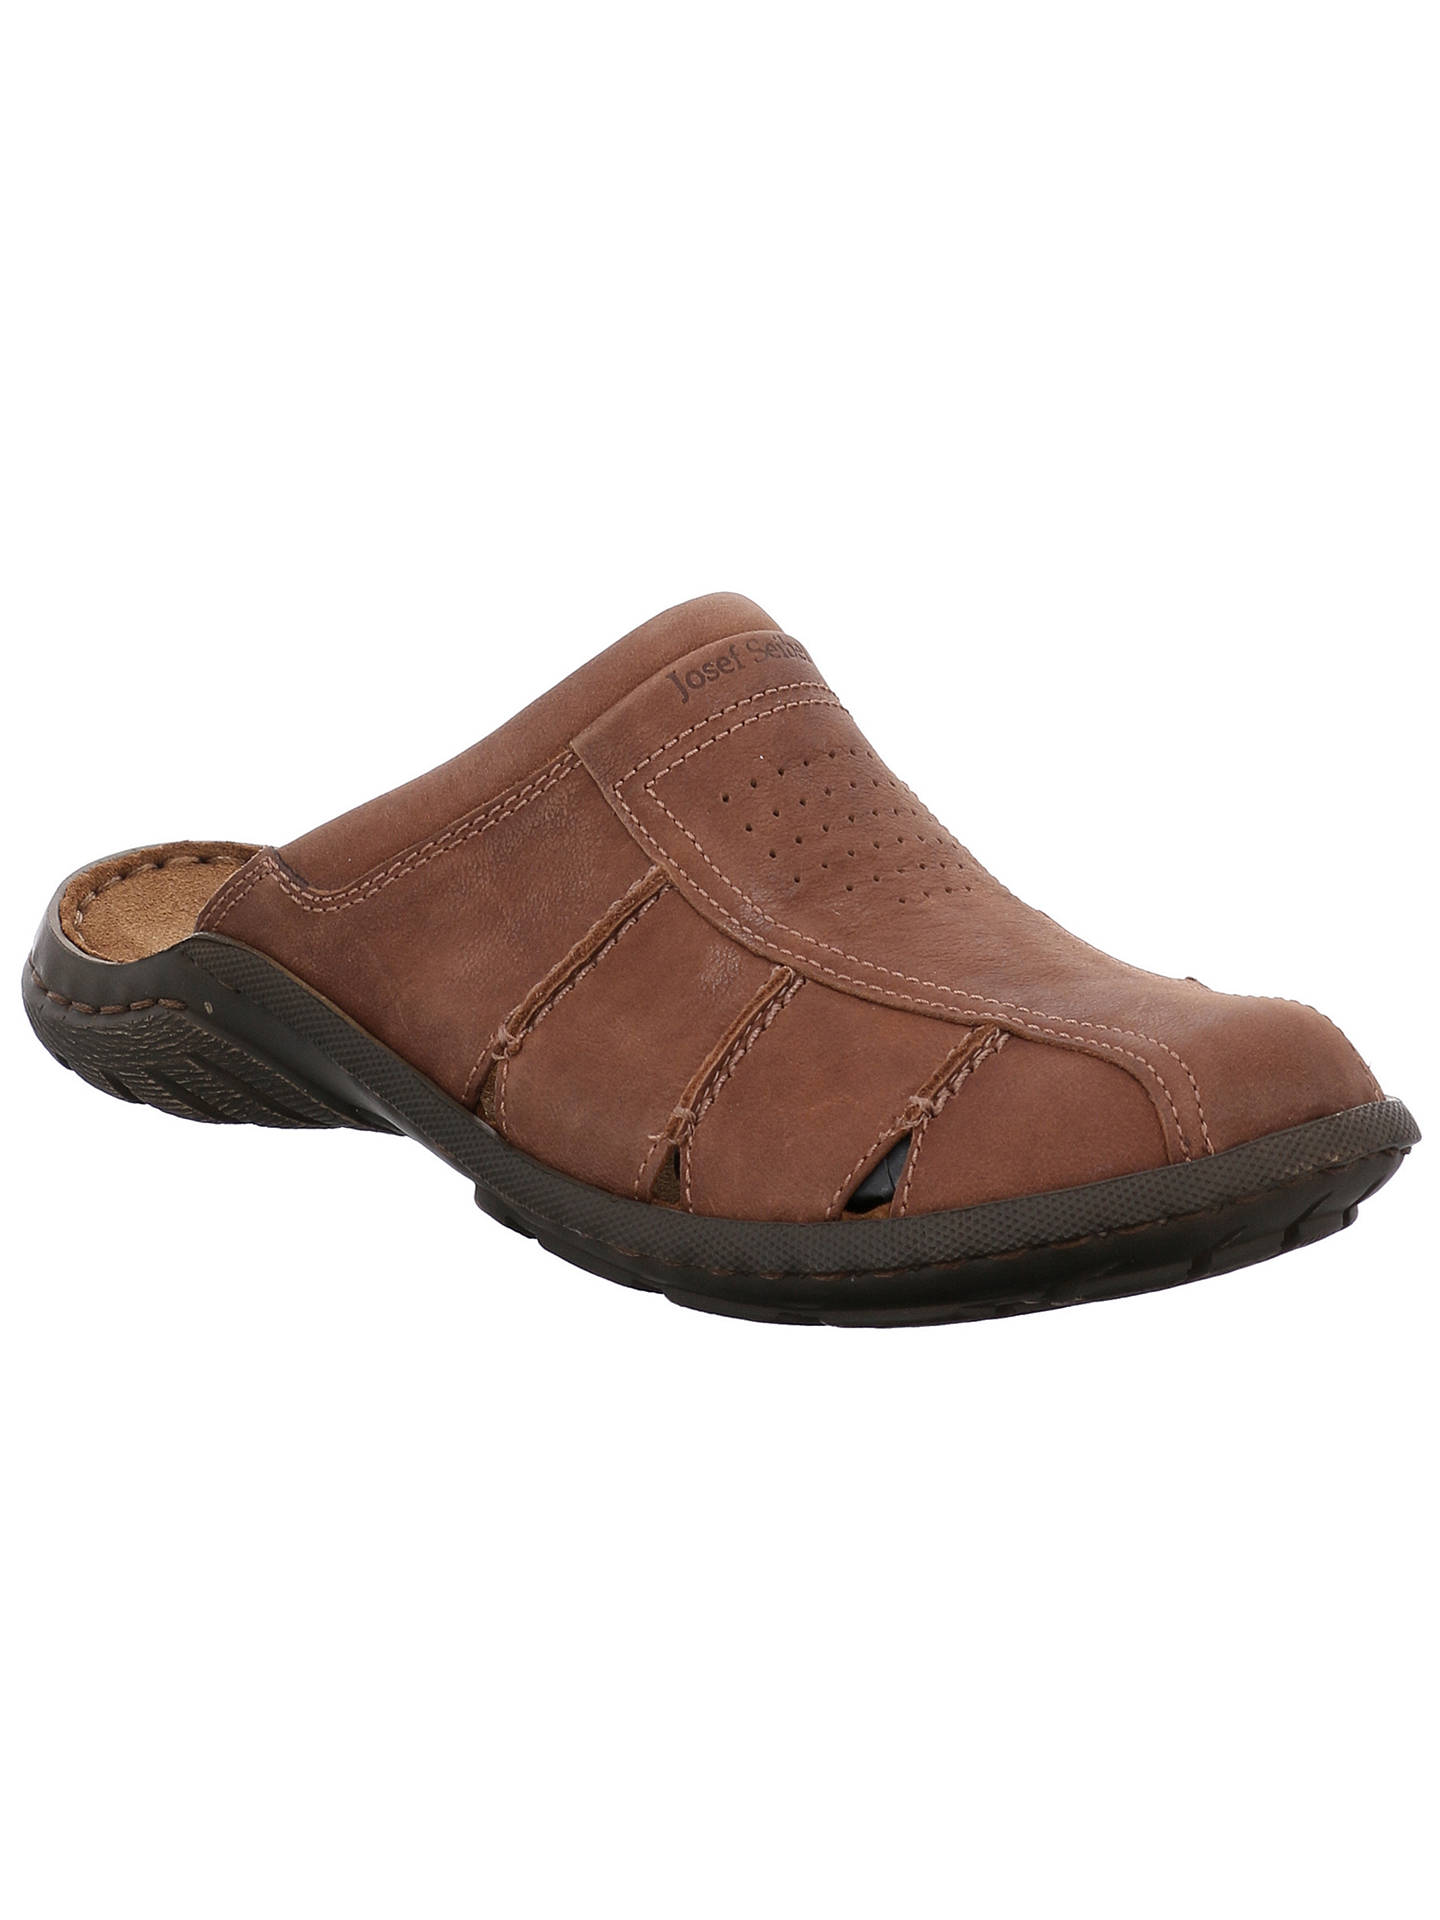 BuyJosef Seibel Logan 22 Leather Sandals, Nut, 7 Online at johnlewis.com